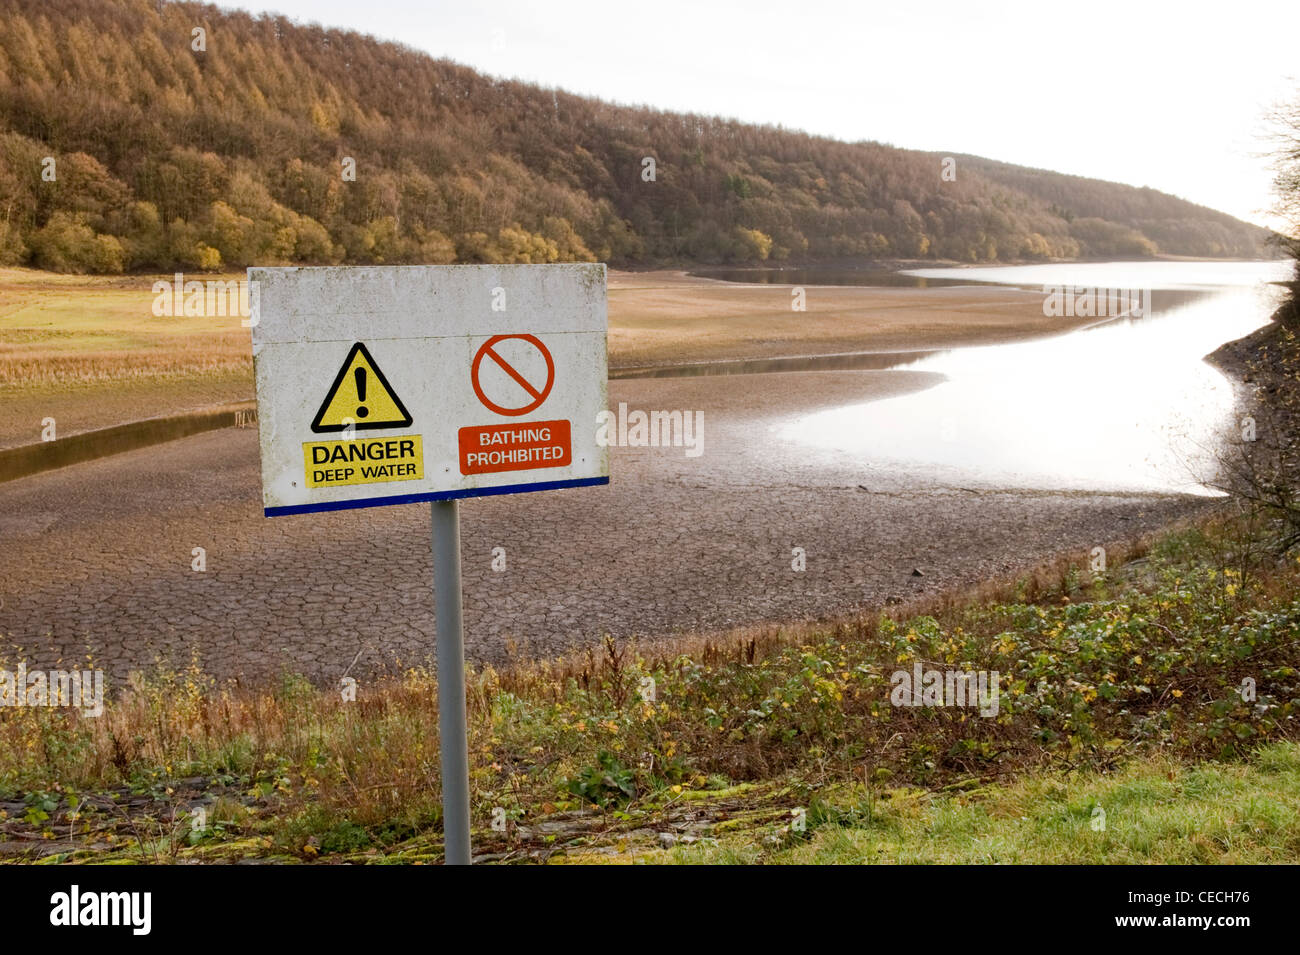 Lindley Wood Reservoir showing very low water levels and two danger signs. - Stock Image